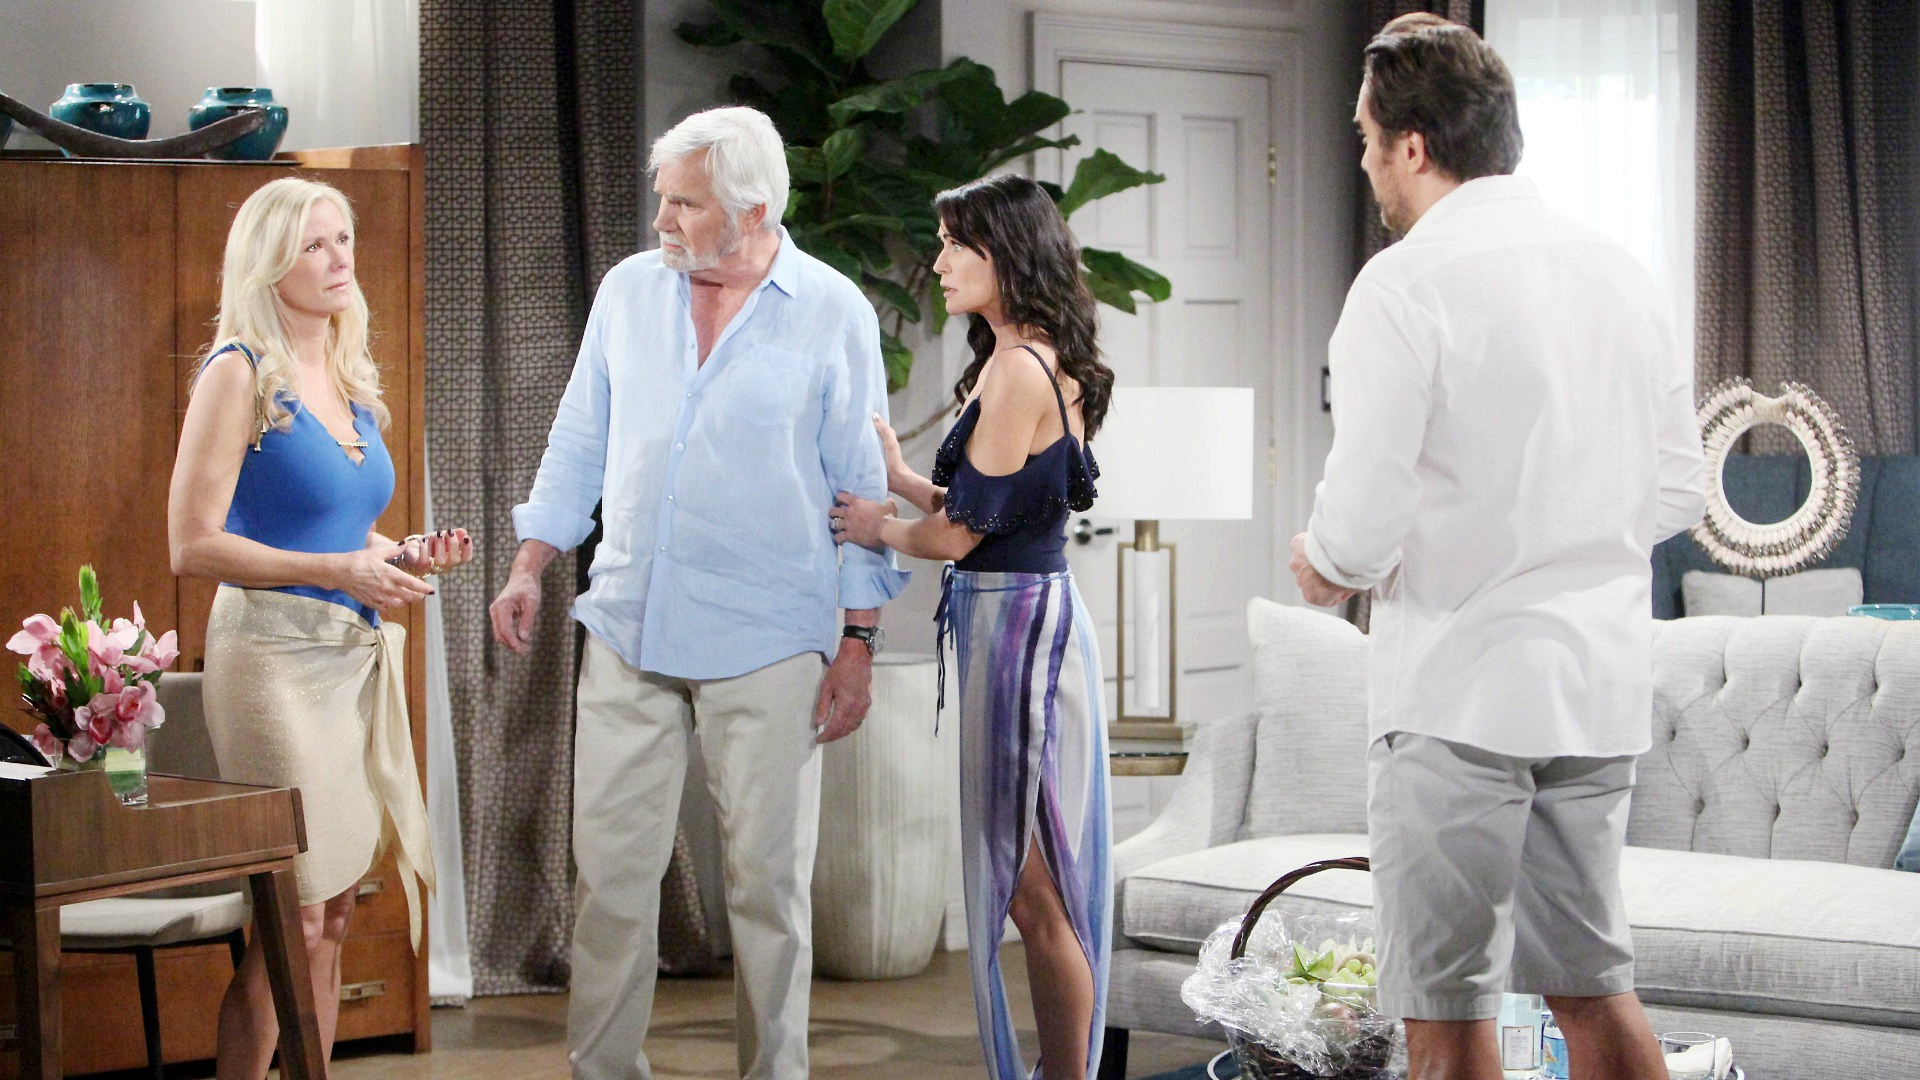 Ridge scrambles to keep his affair with Quinn from being exposed to the wrong person.